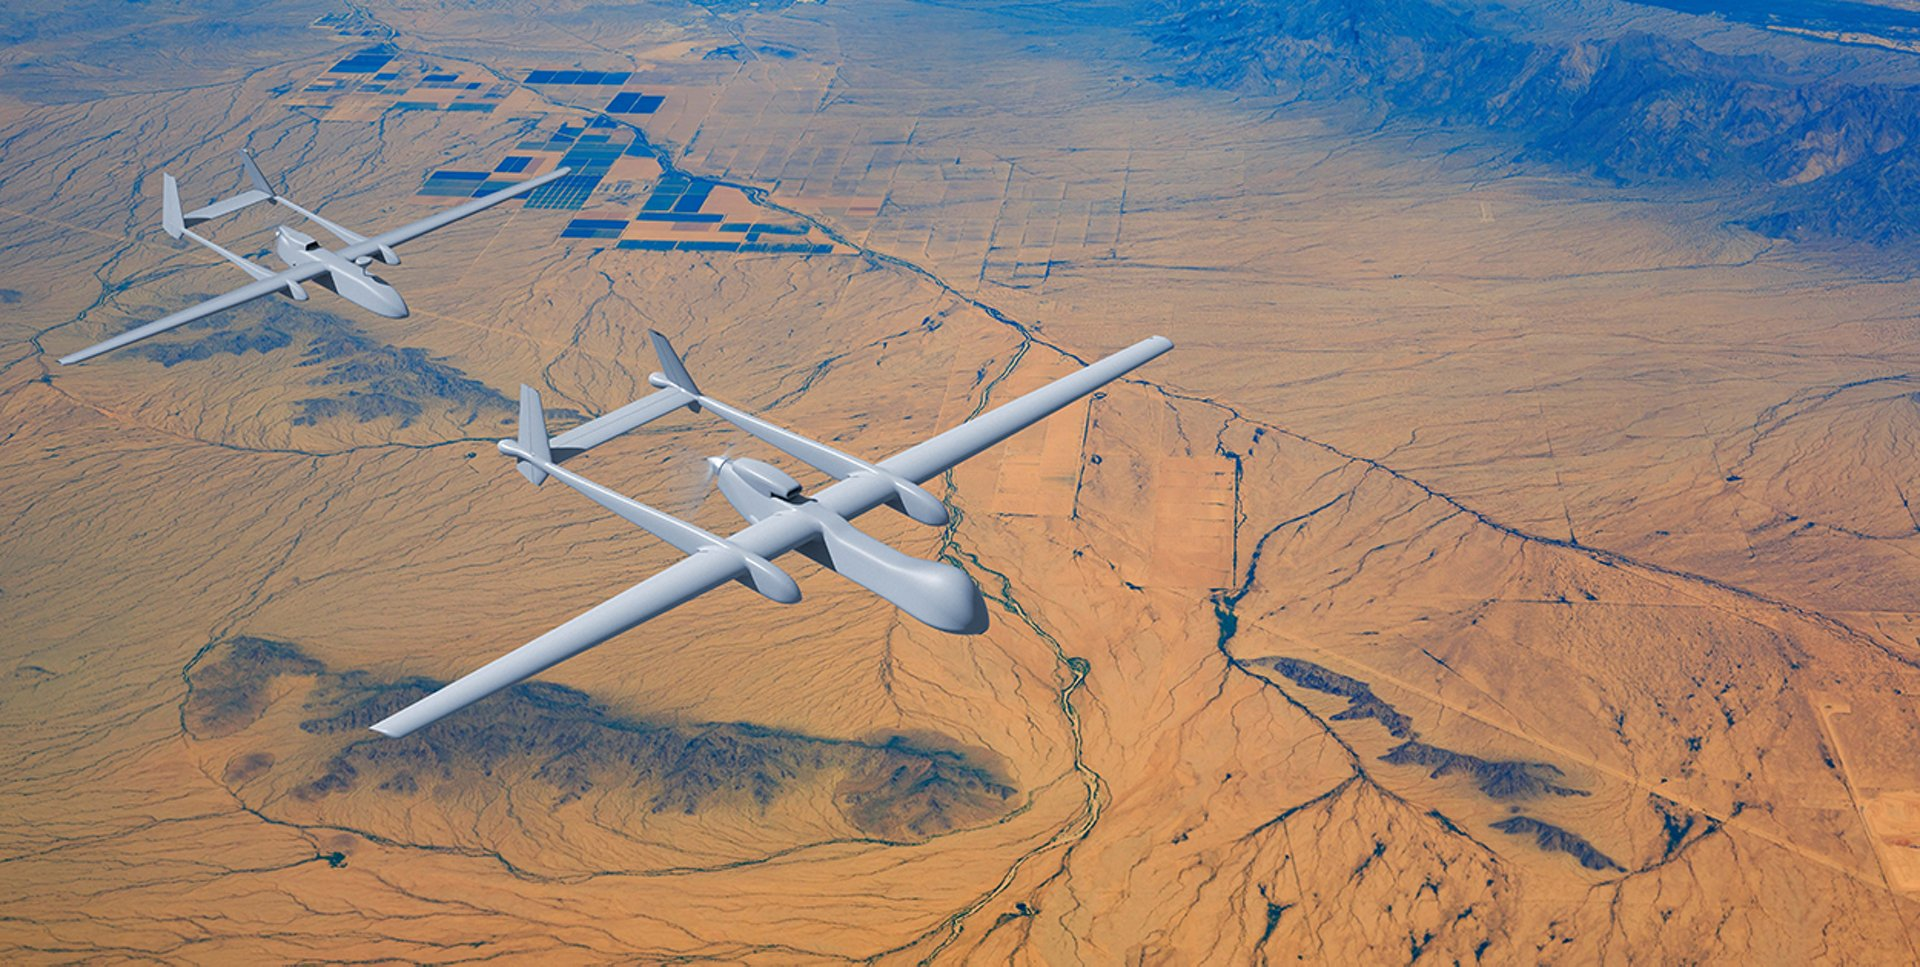 Heron TP unmanned aerial systems (UAS)